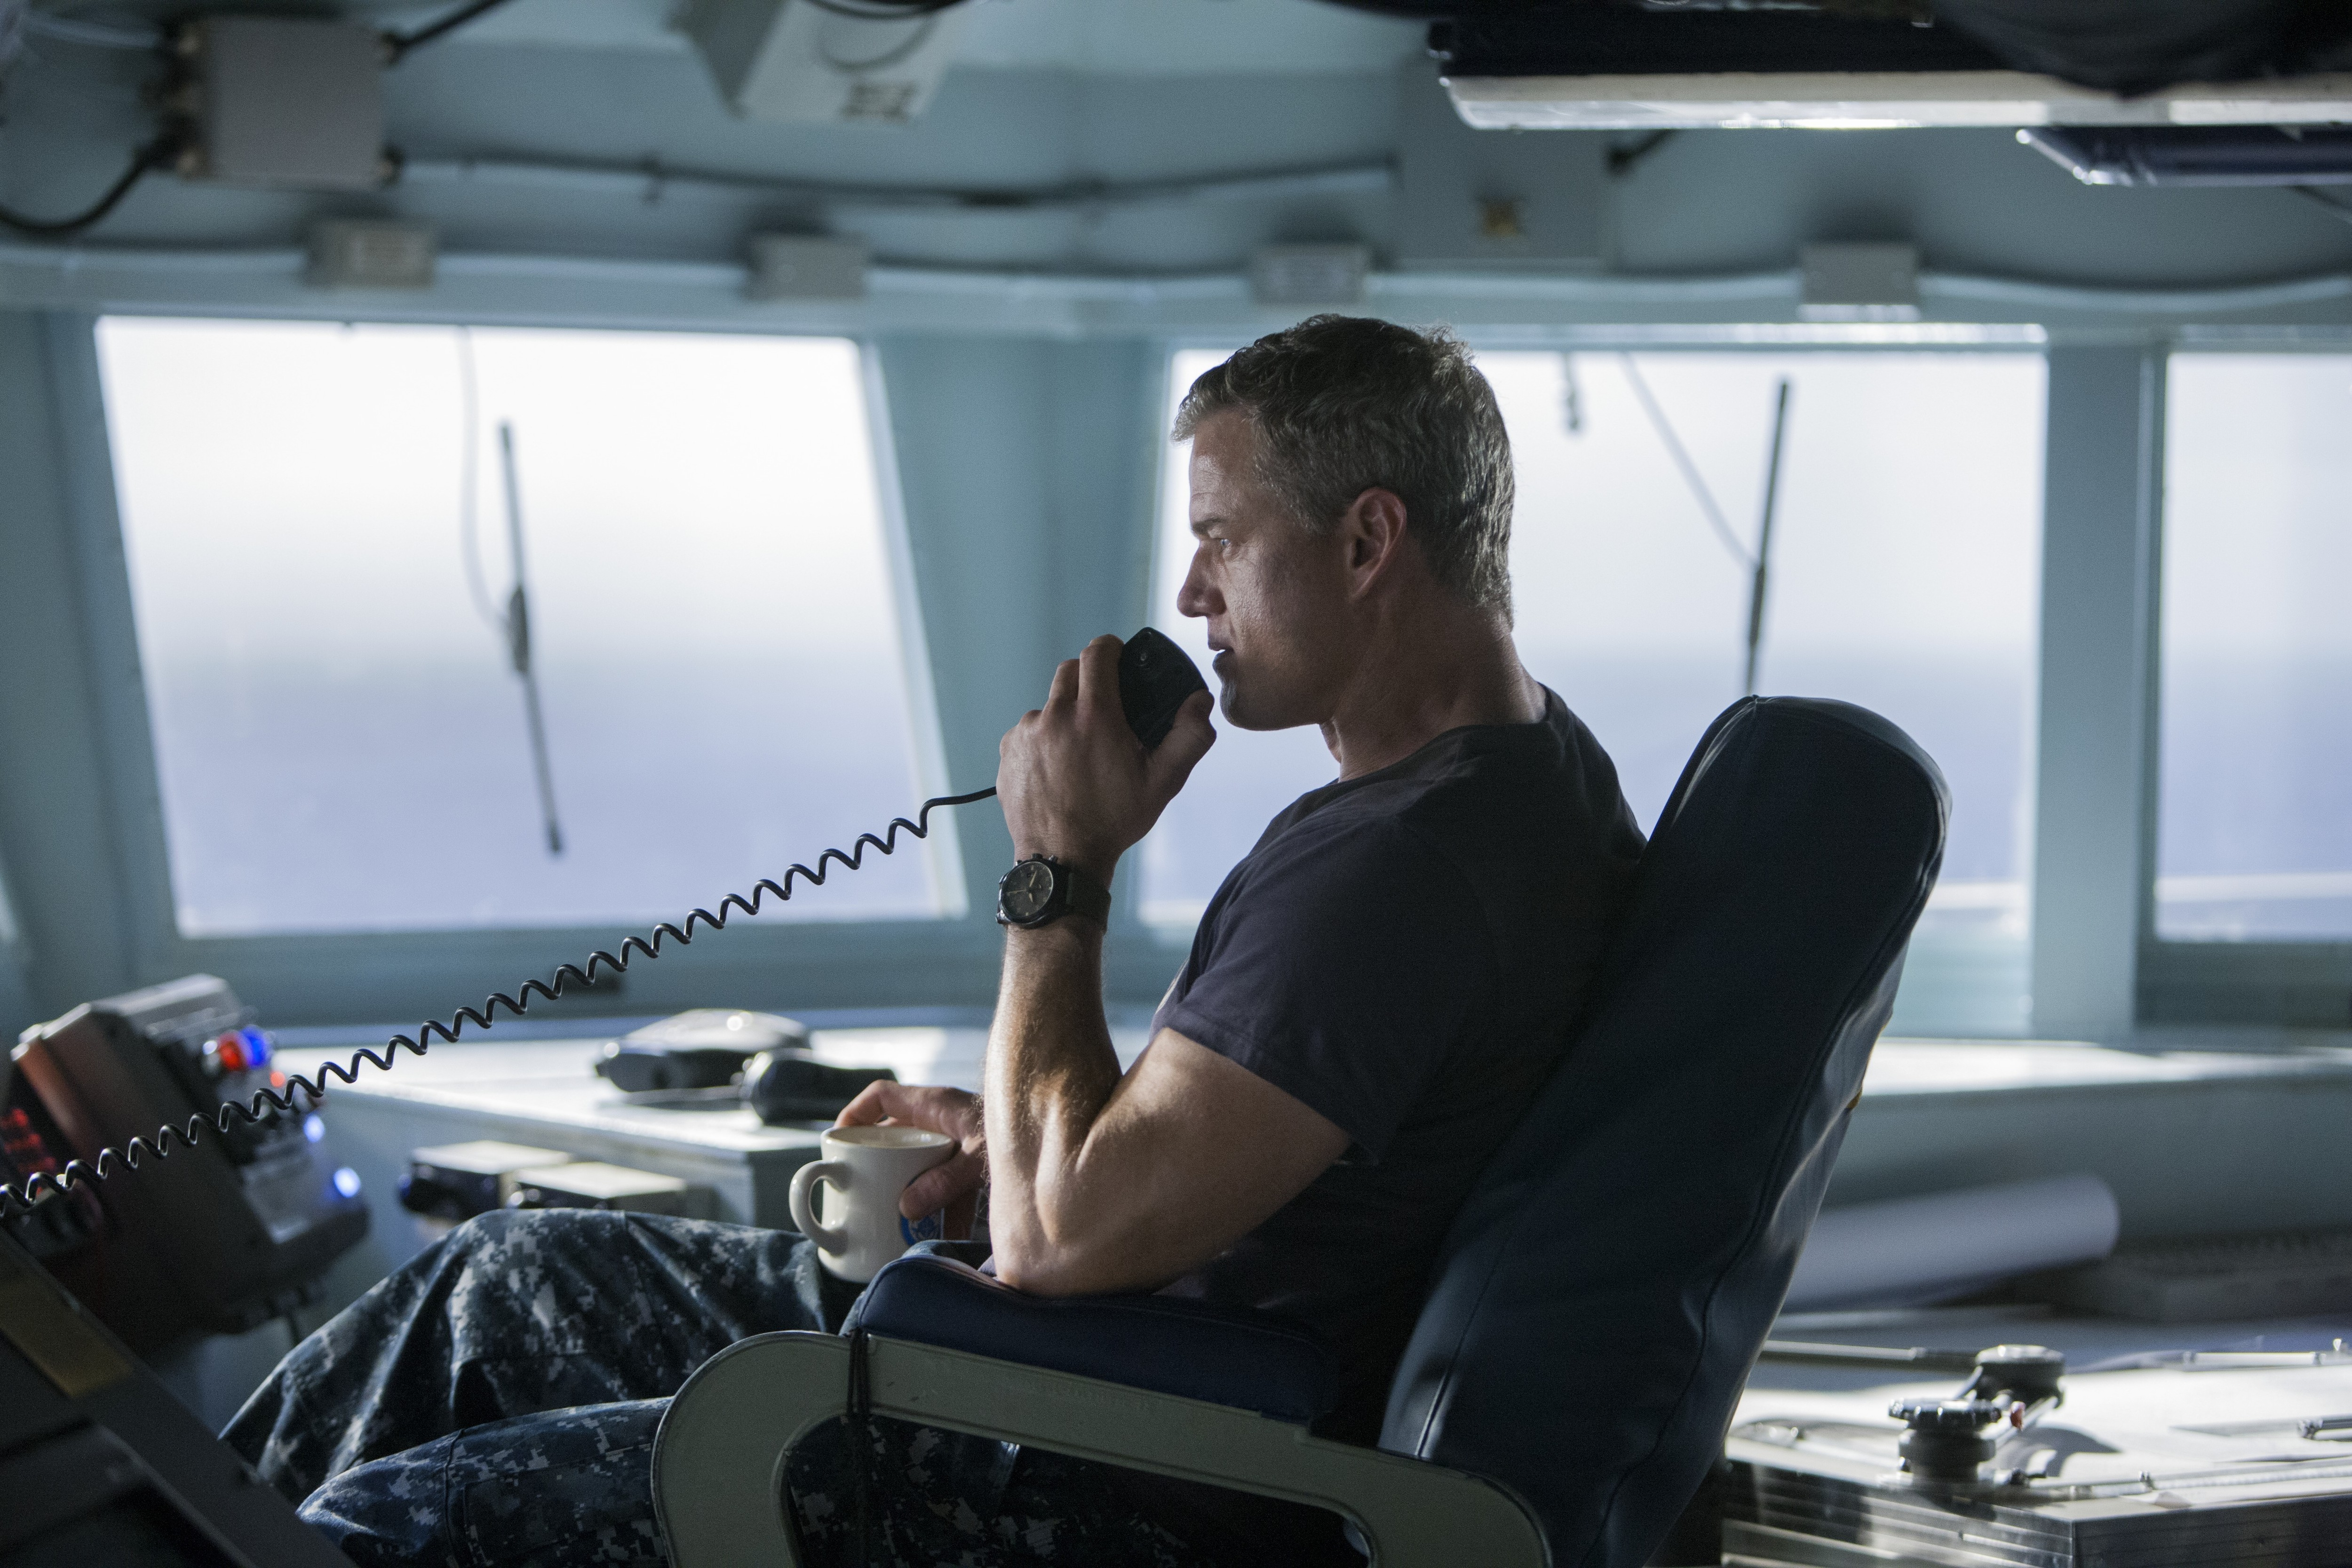 TNT's New Series 'The Last Ship' Inspires Some Eerie Fashion